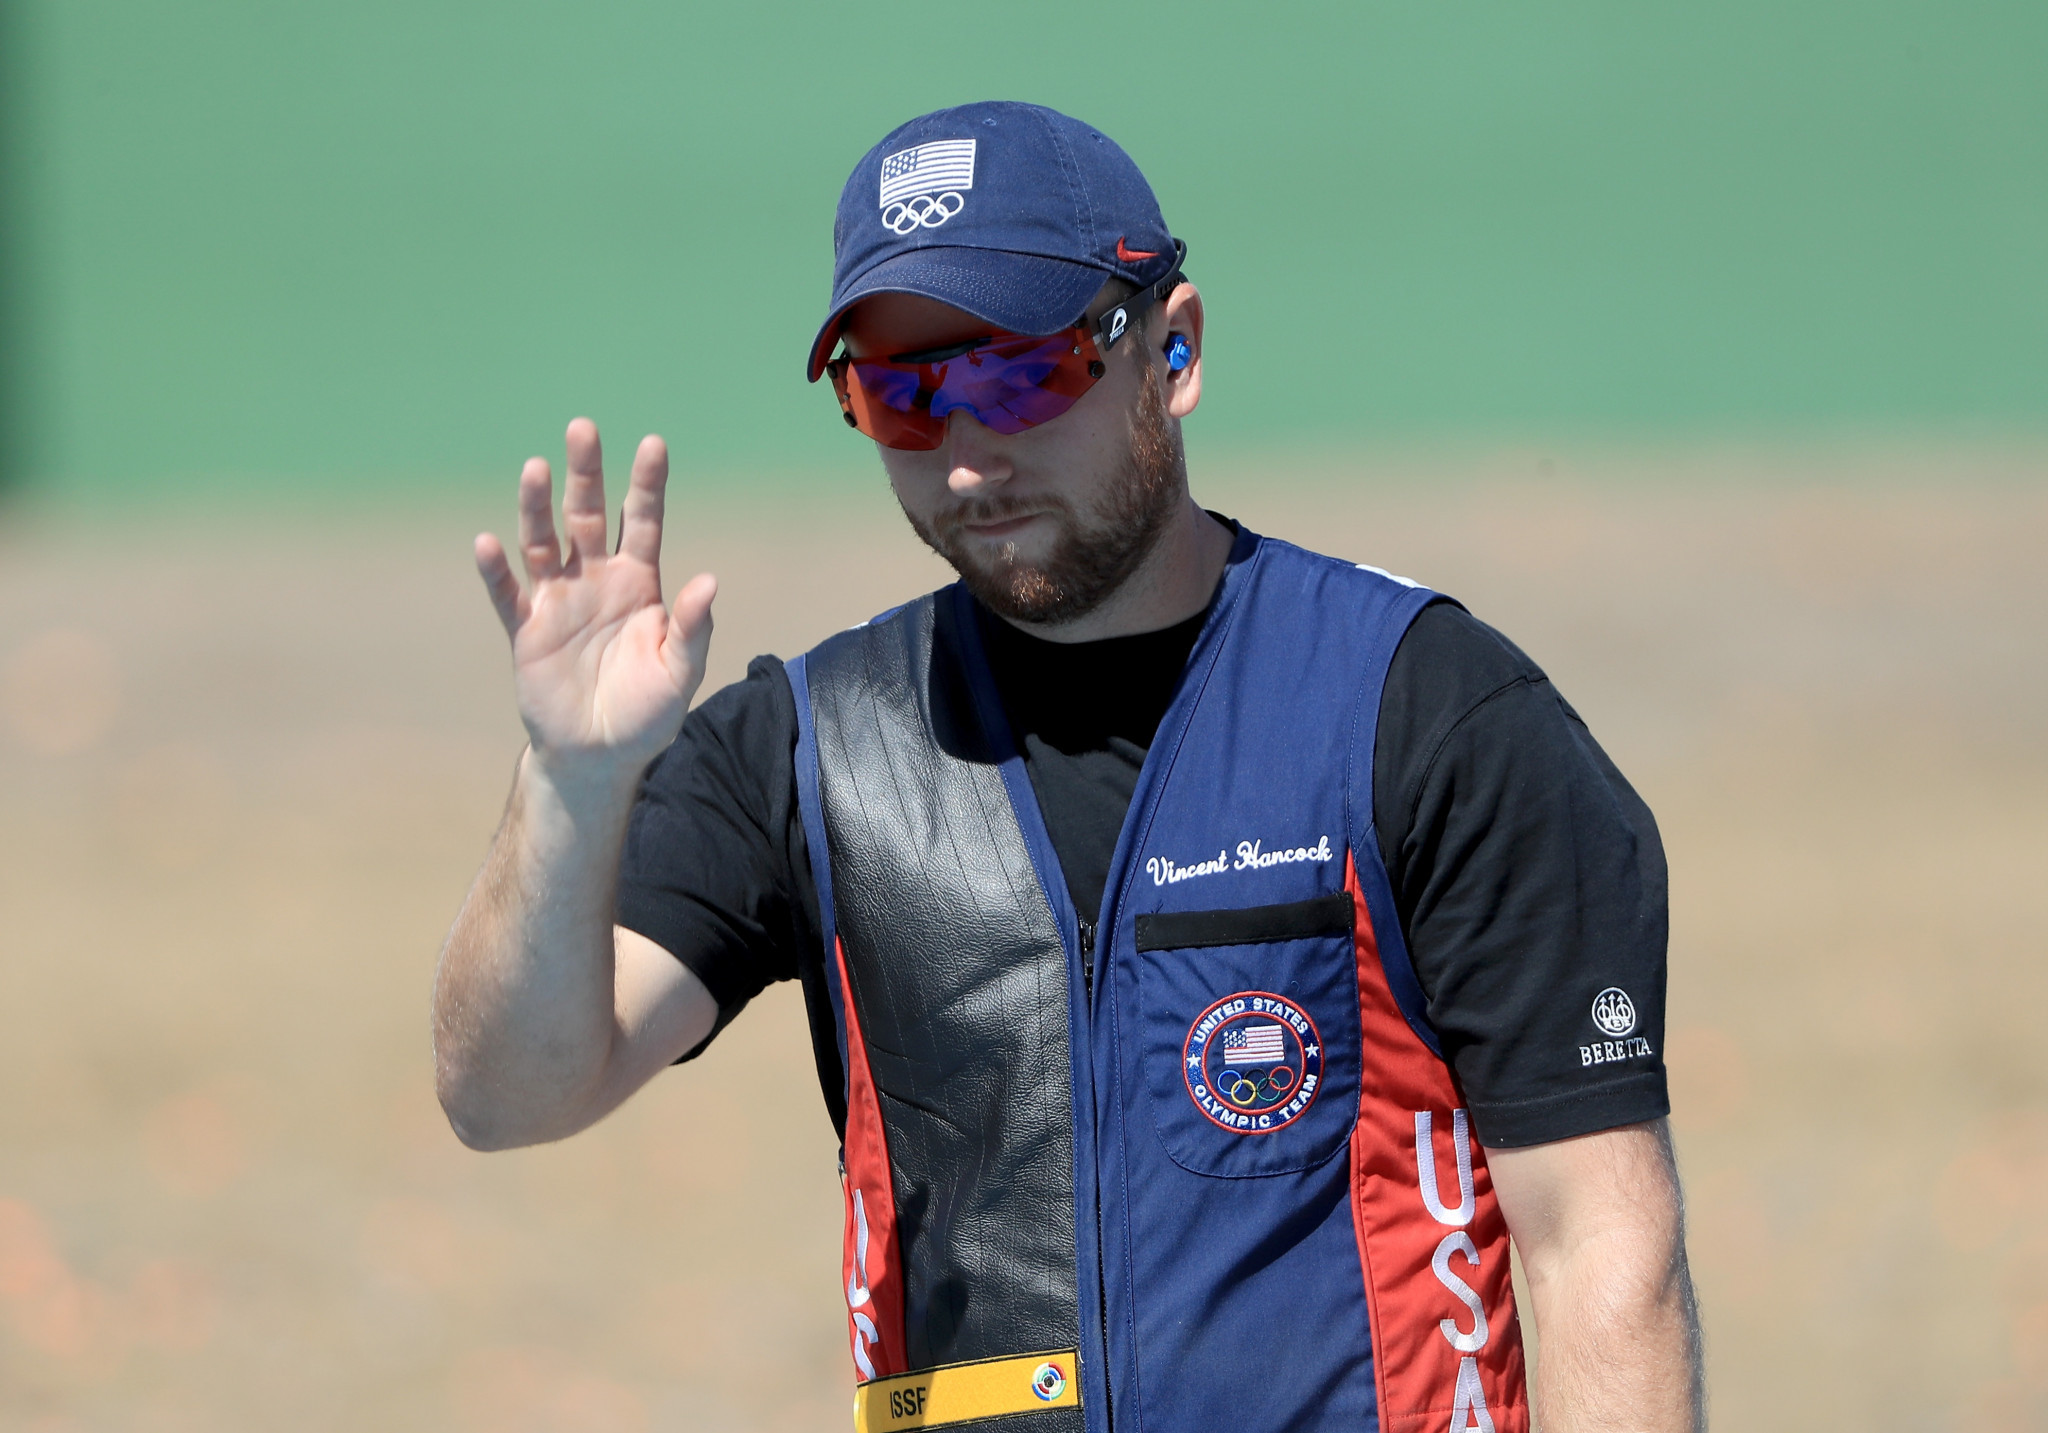 Flawless shooting from Hancock seals skeet gold at Acapulco World Cup